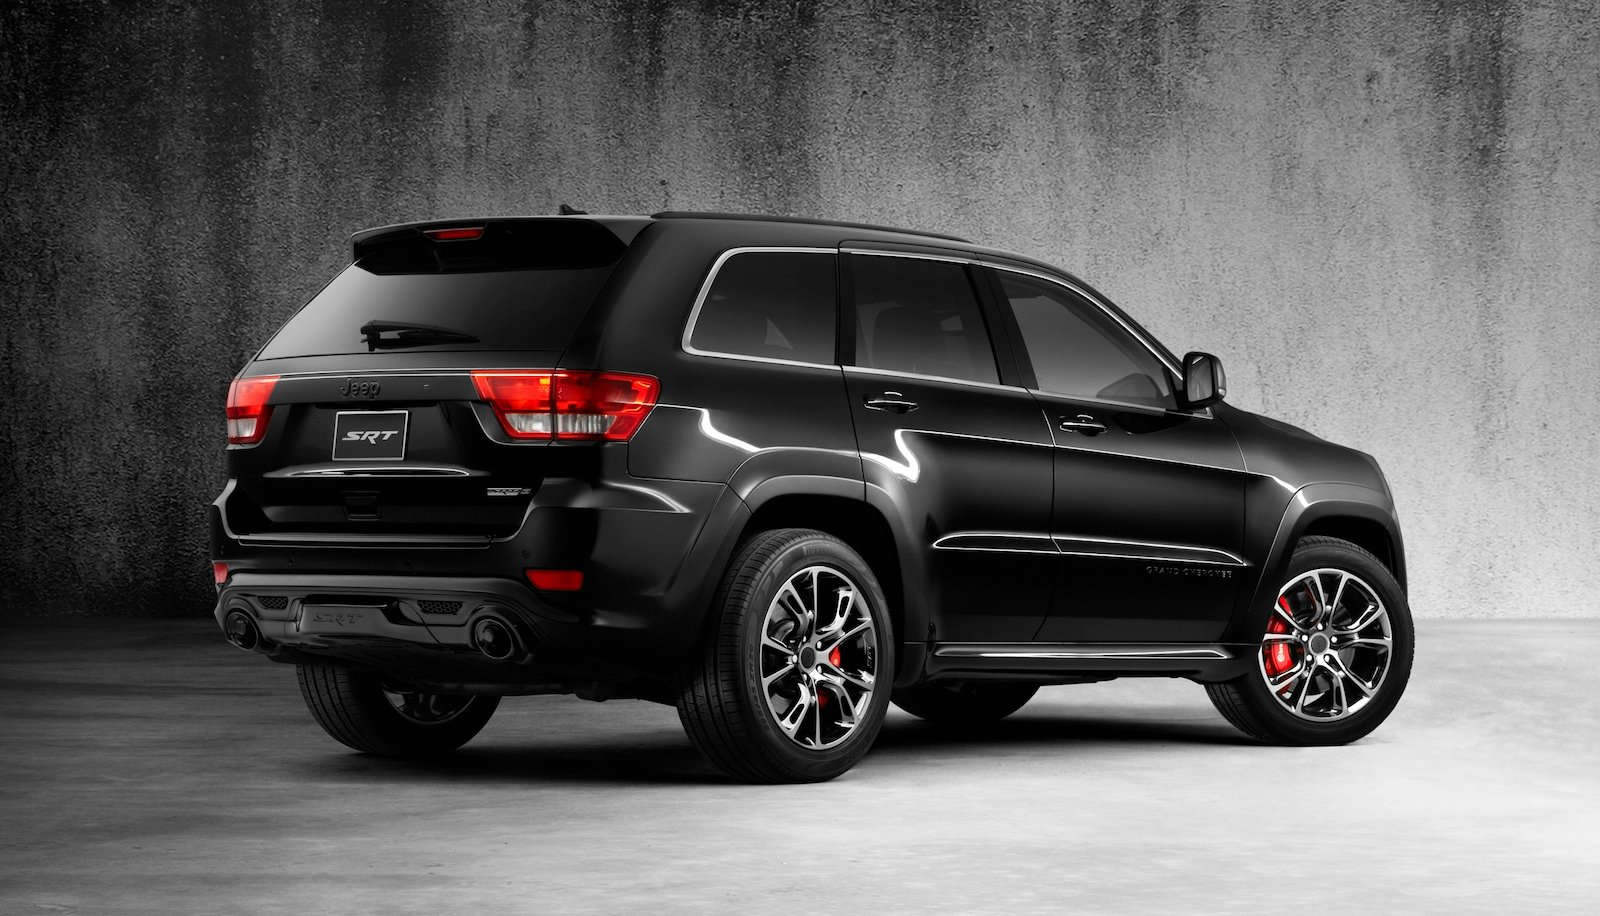 jeep srt8 by jeep grand cherokee srt8 all muscle ozzy tyres wheels u0026 rims